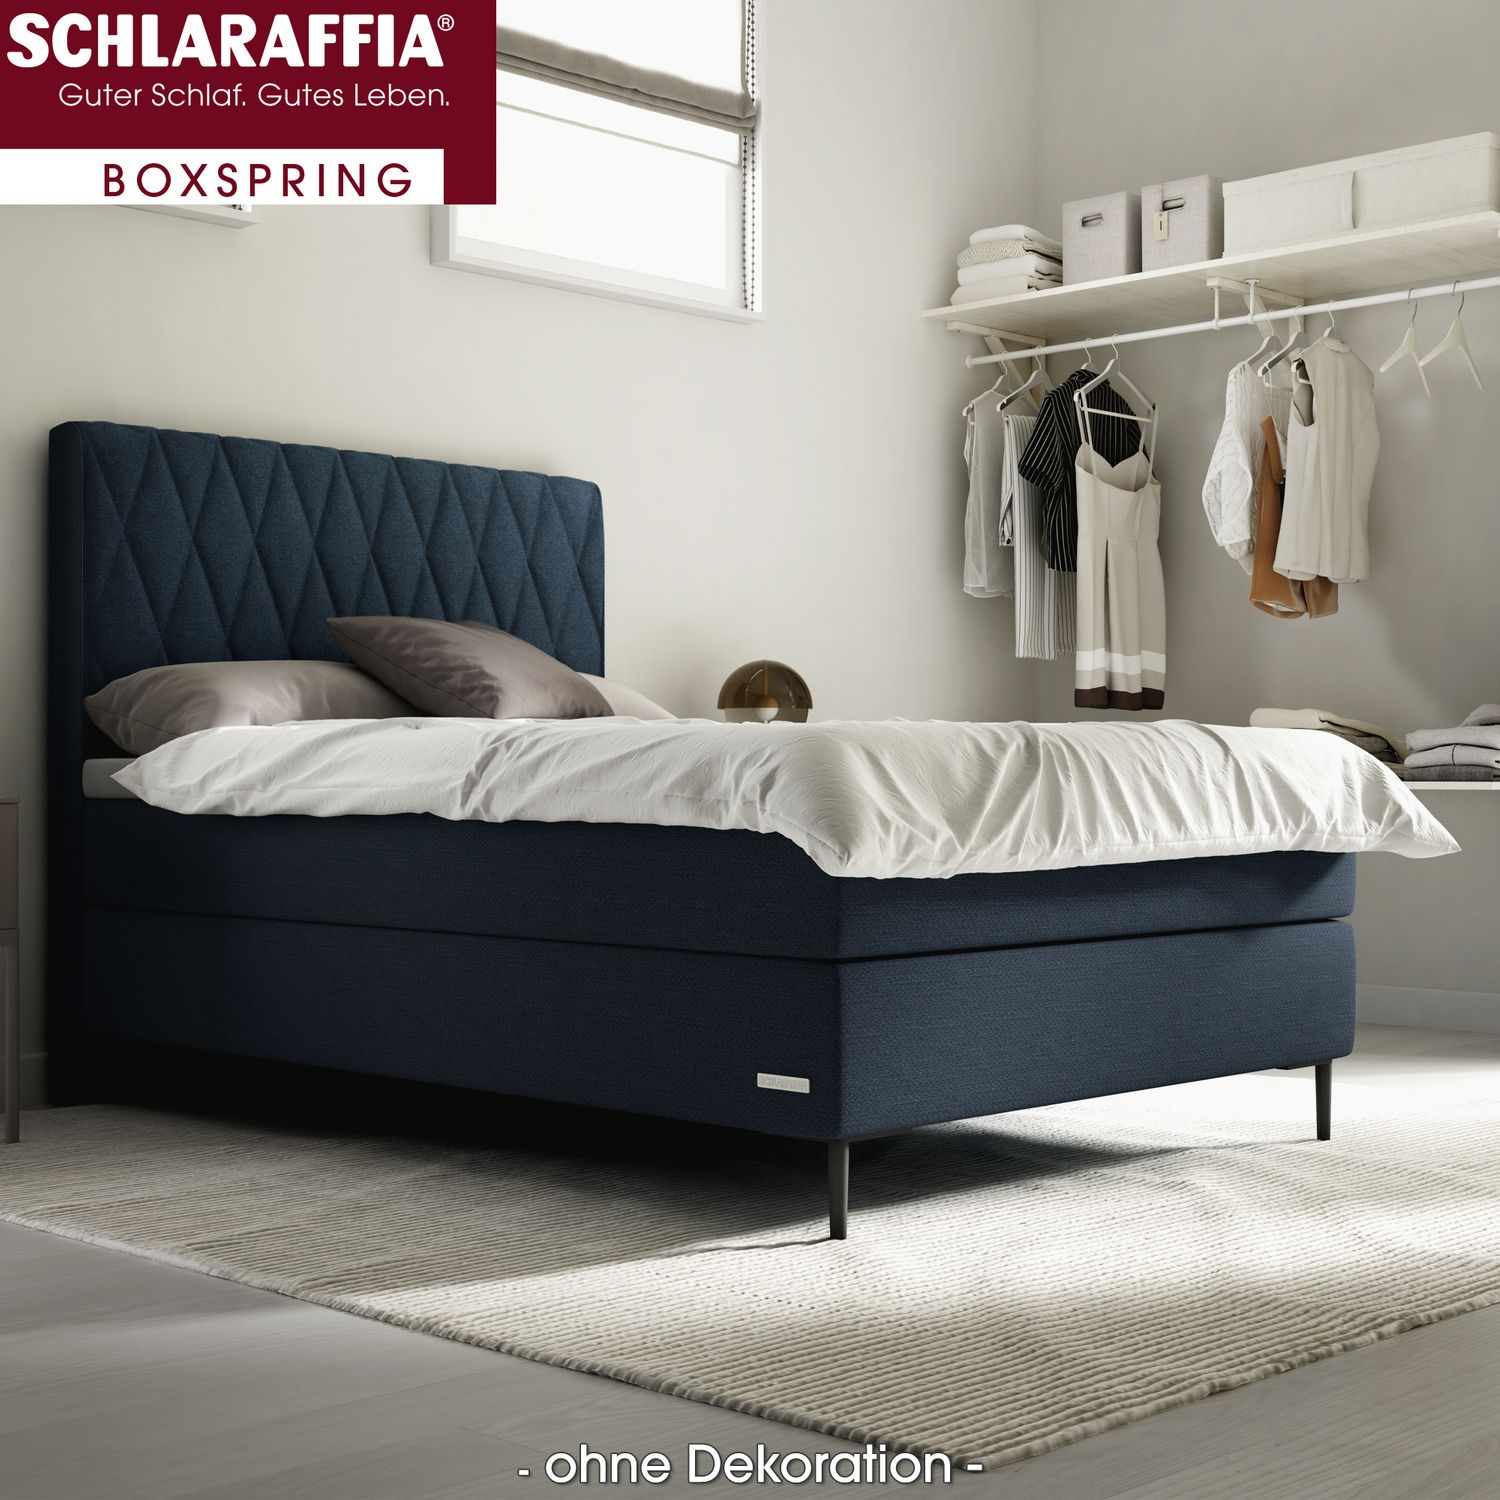 schlaraffia marylin box cubic boxspringbett 160x220 cm boxspringbetten nach gr e 160 x 220 cm. Black Bedroom Furniture Sets. Home Design Ideas